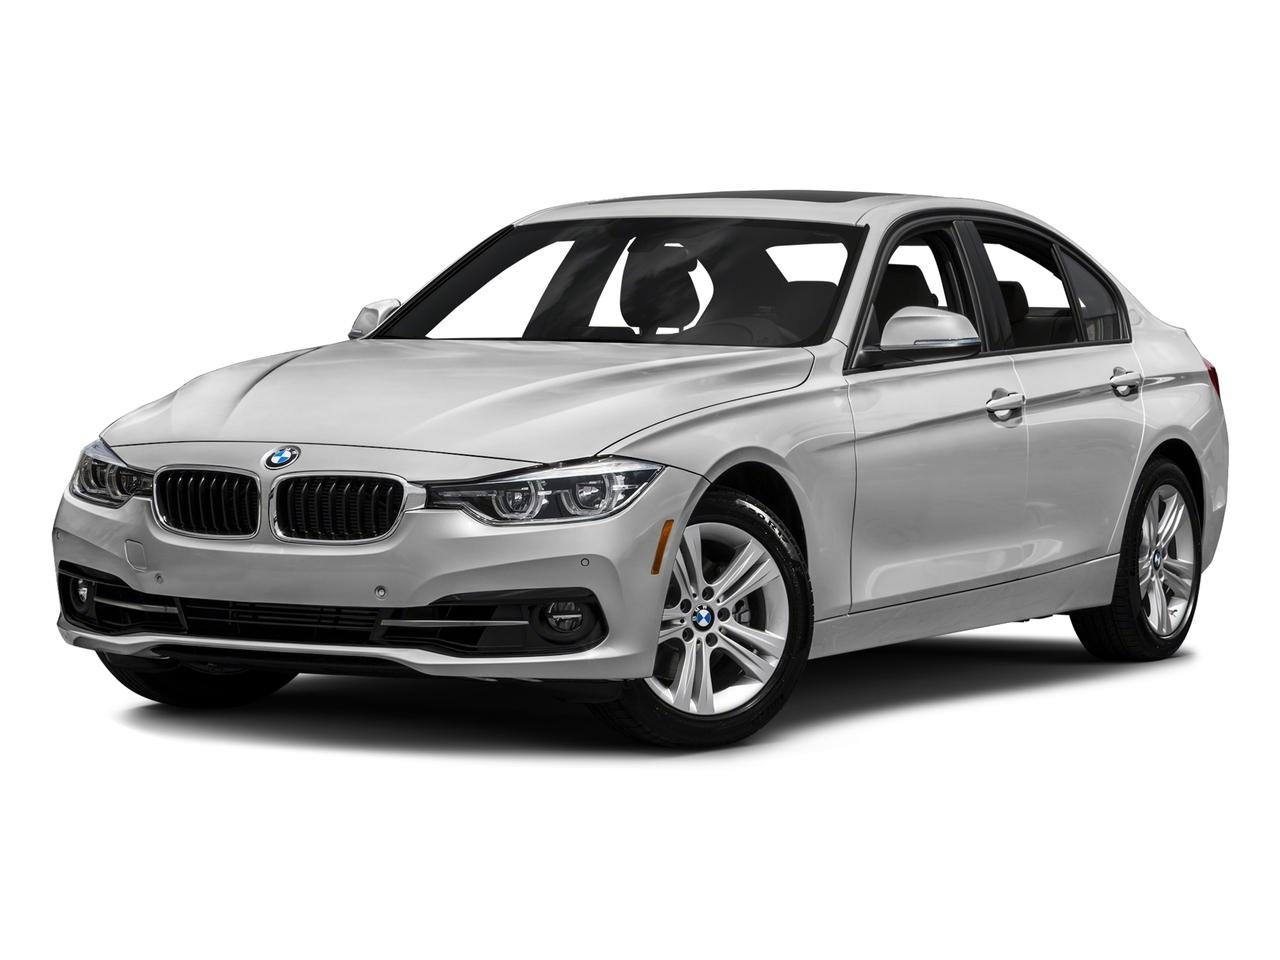 2016 BMW 328i Vehicle Photo in Temple, TX 76502